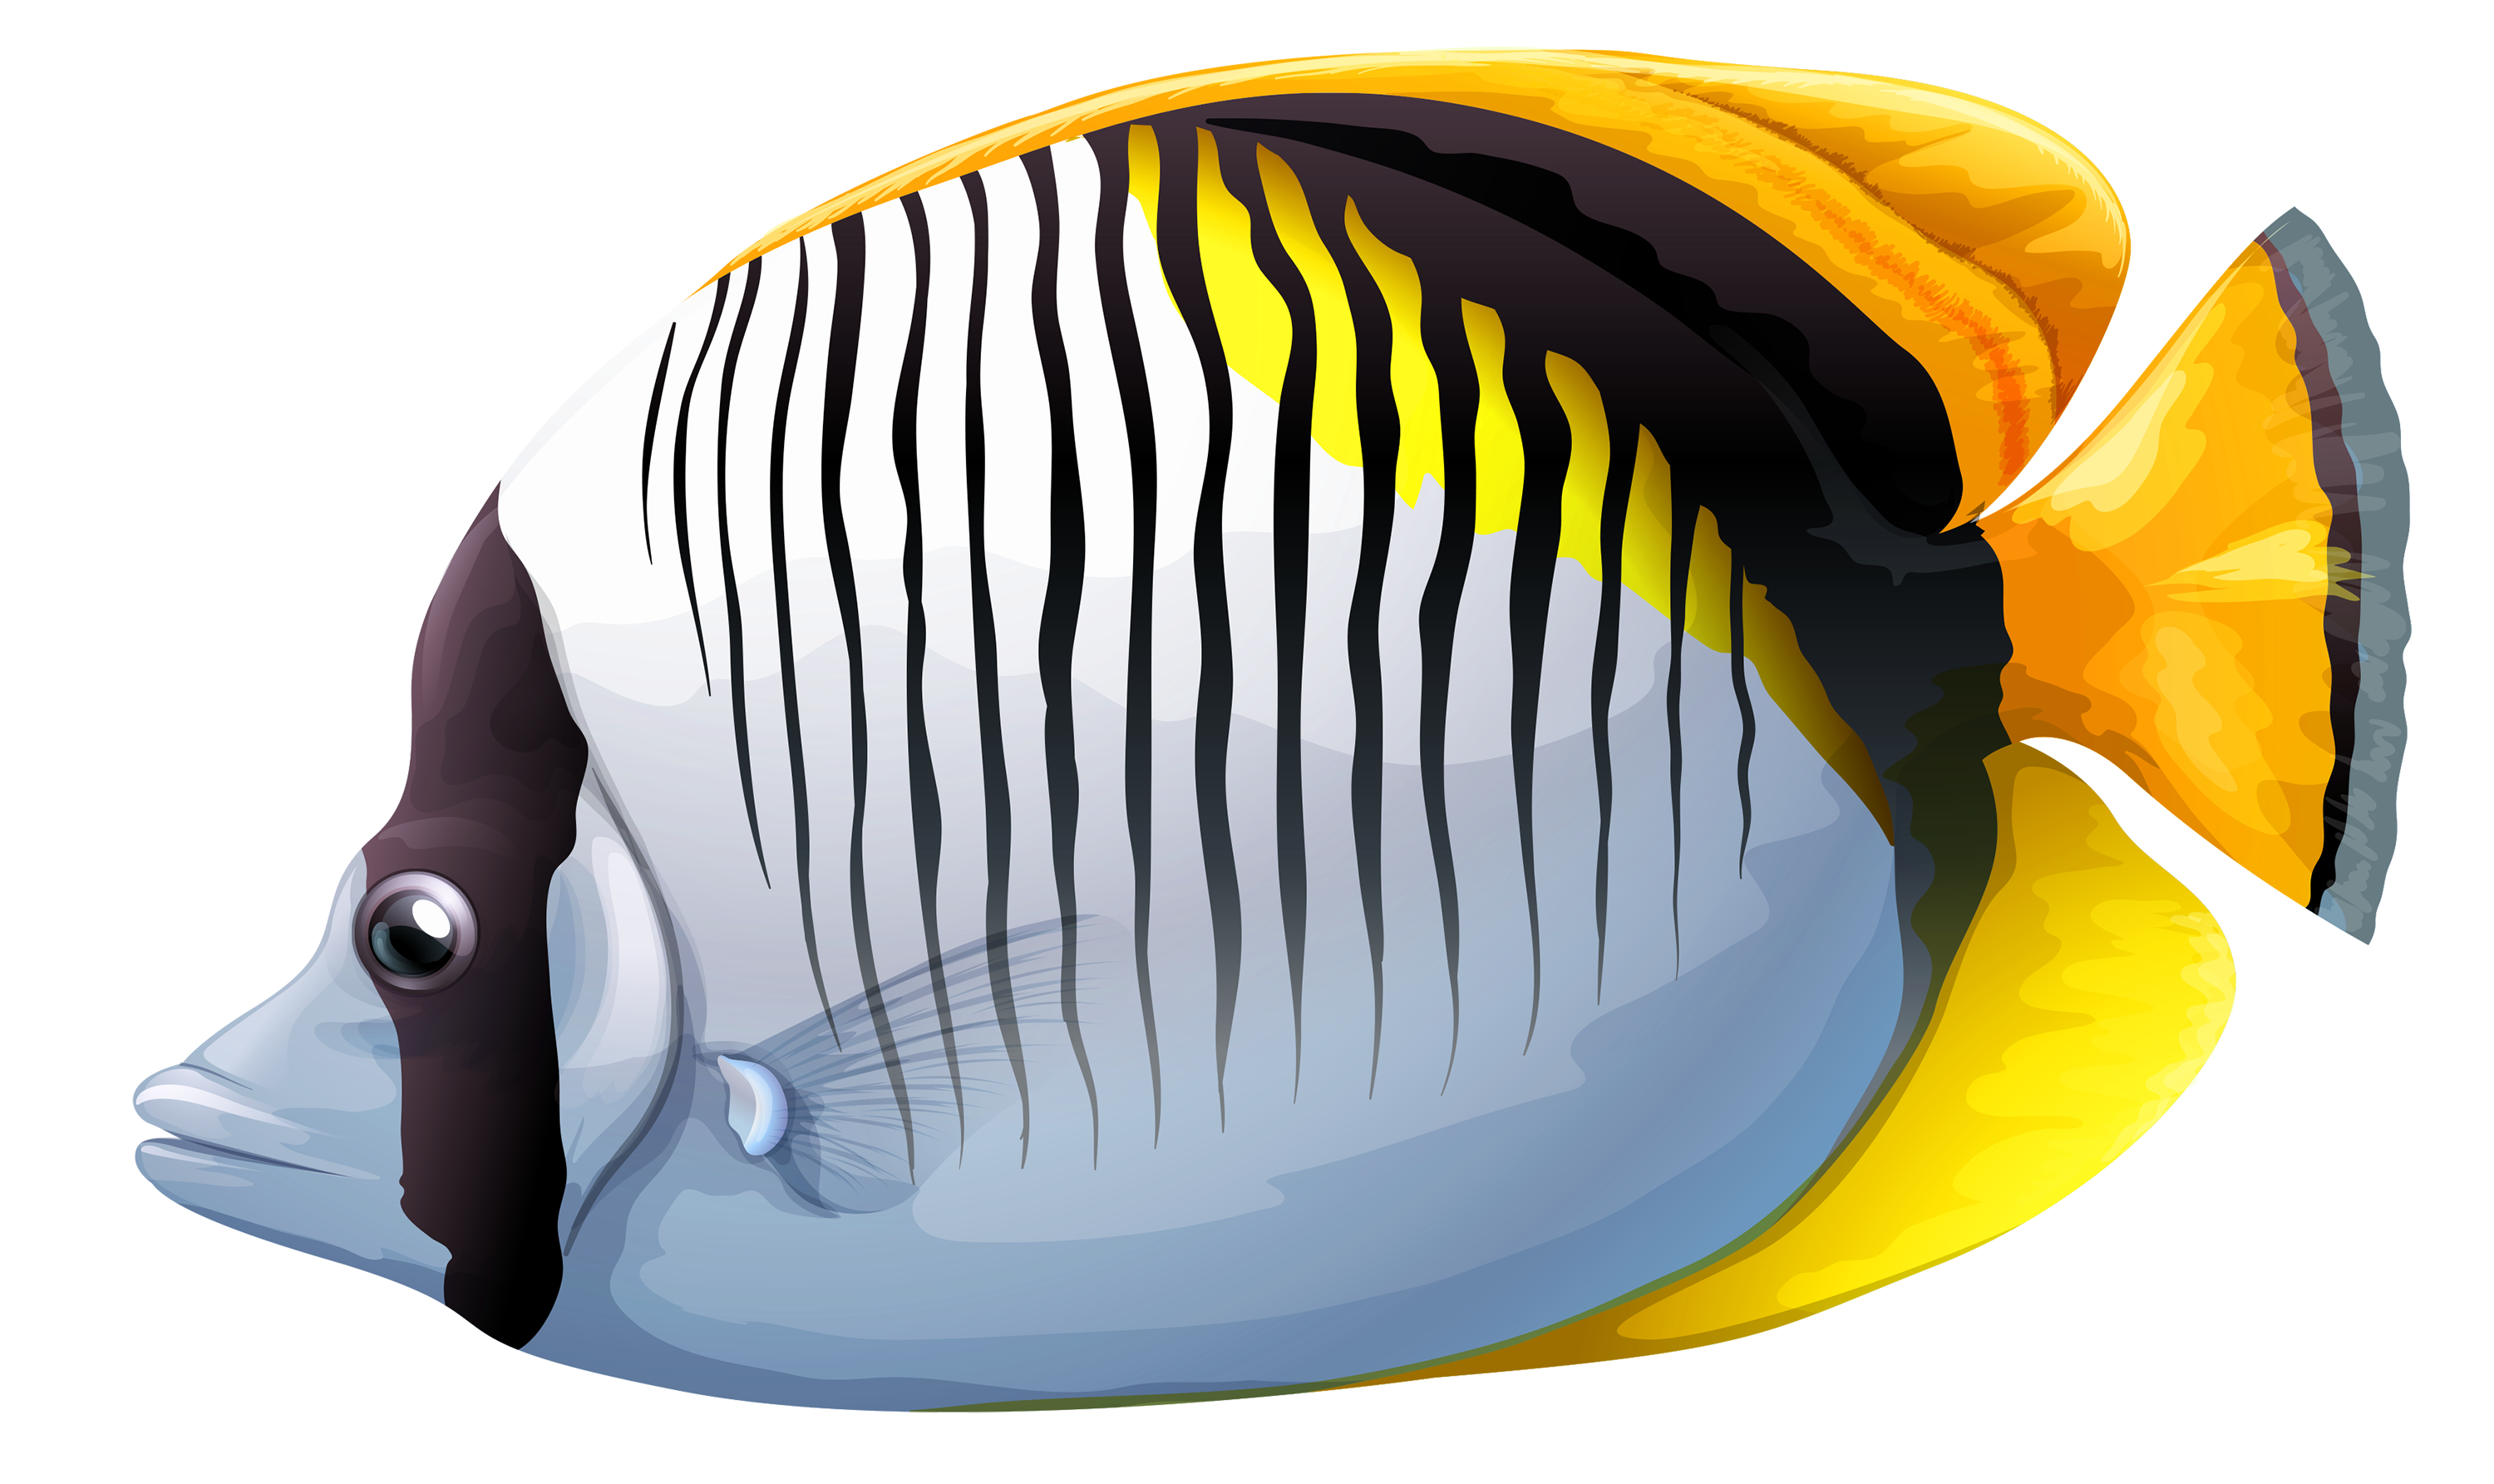 Chaetodon fish png image. Underwater clipart jpg black and white